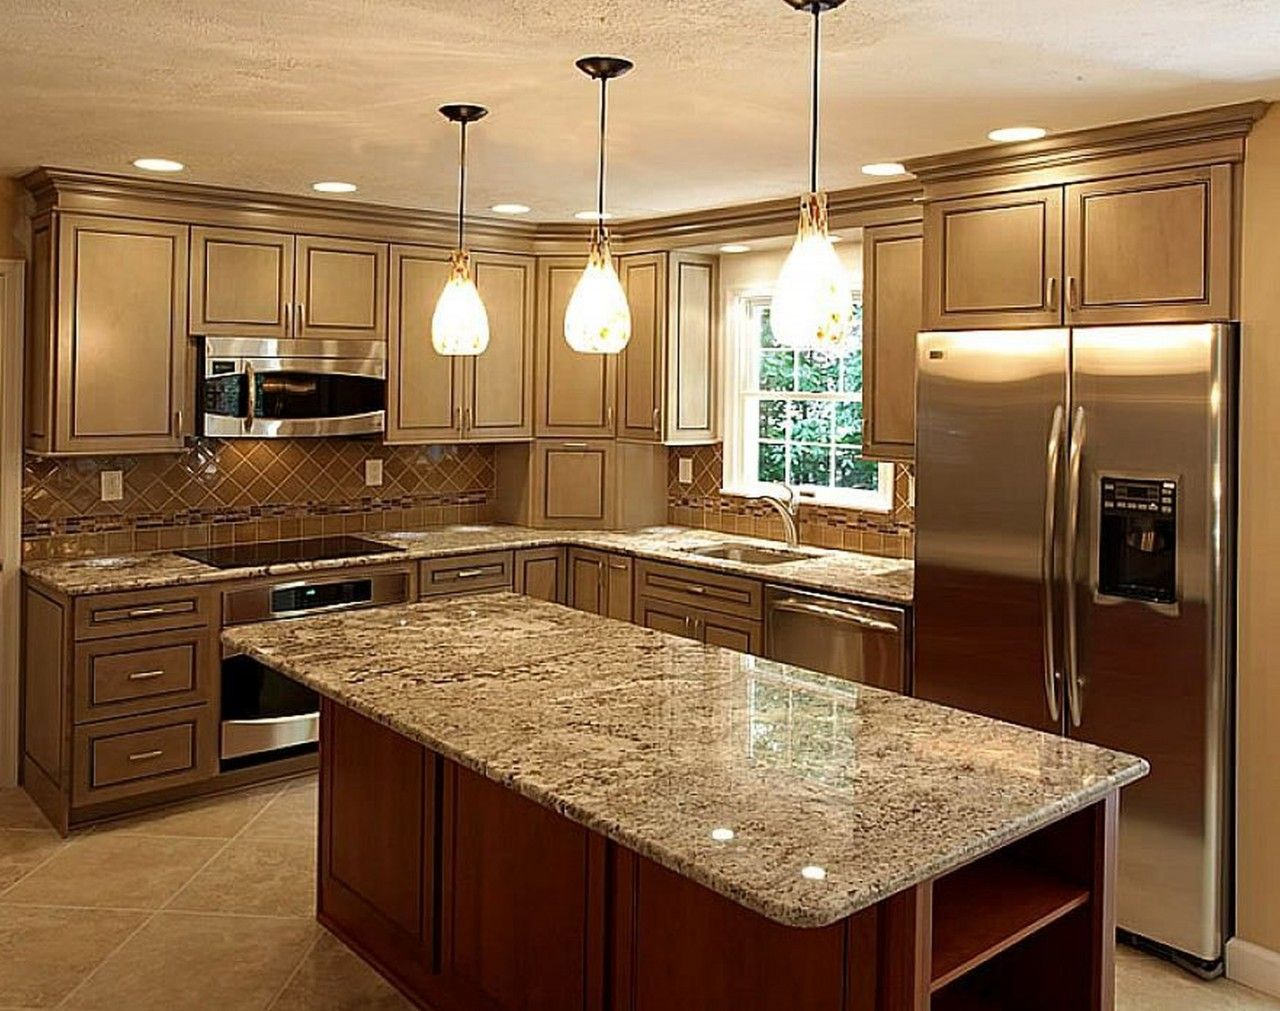 Endearing Home Depot Quartz Countertops Build Magnificent Cambria Amazing Home Depot Kitchen Countertops Decorating Inspiration